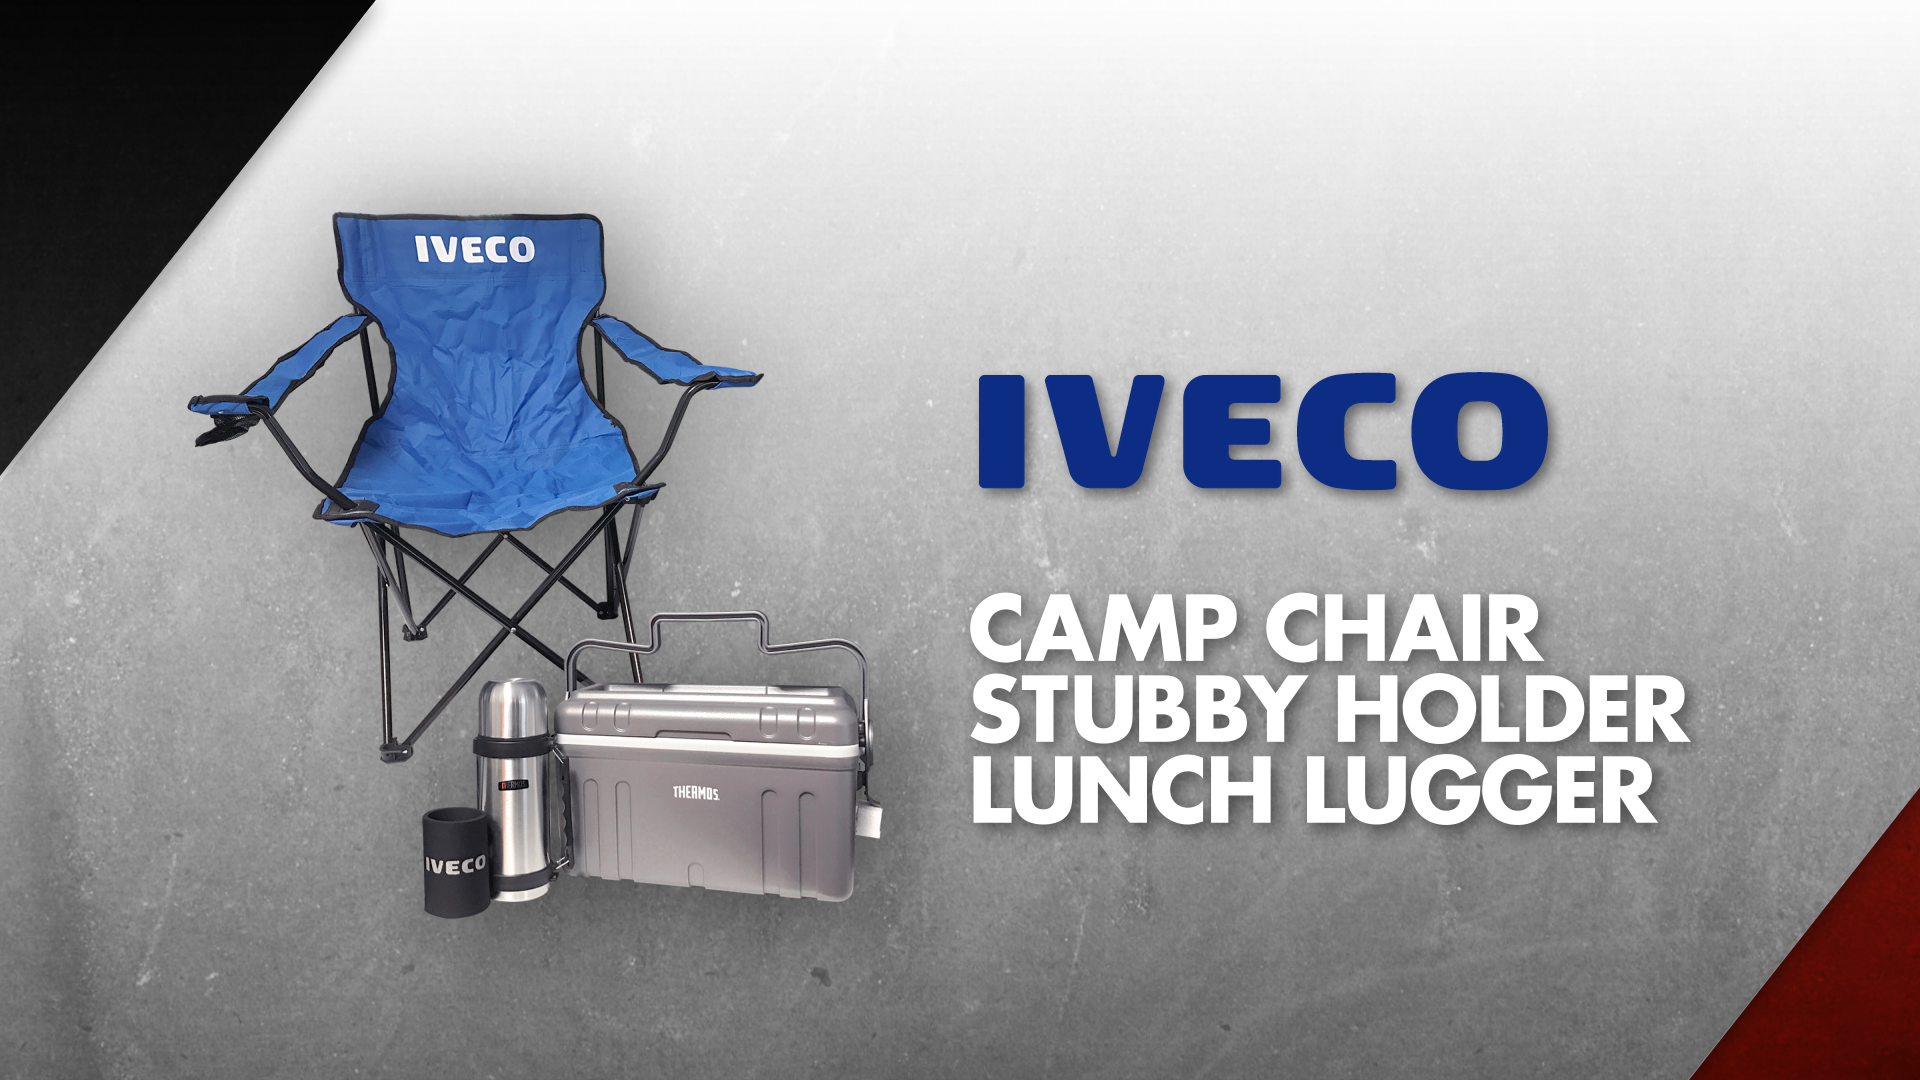 Weekly Prizes from IVECO